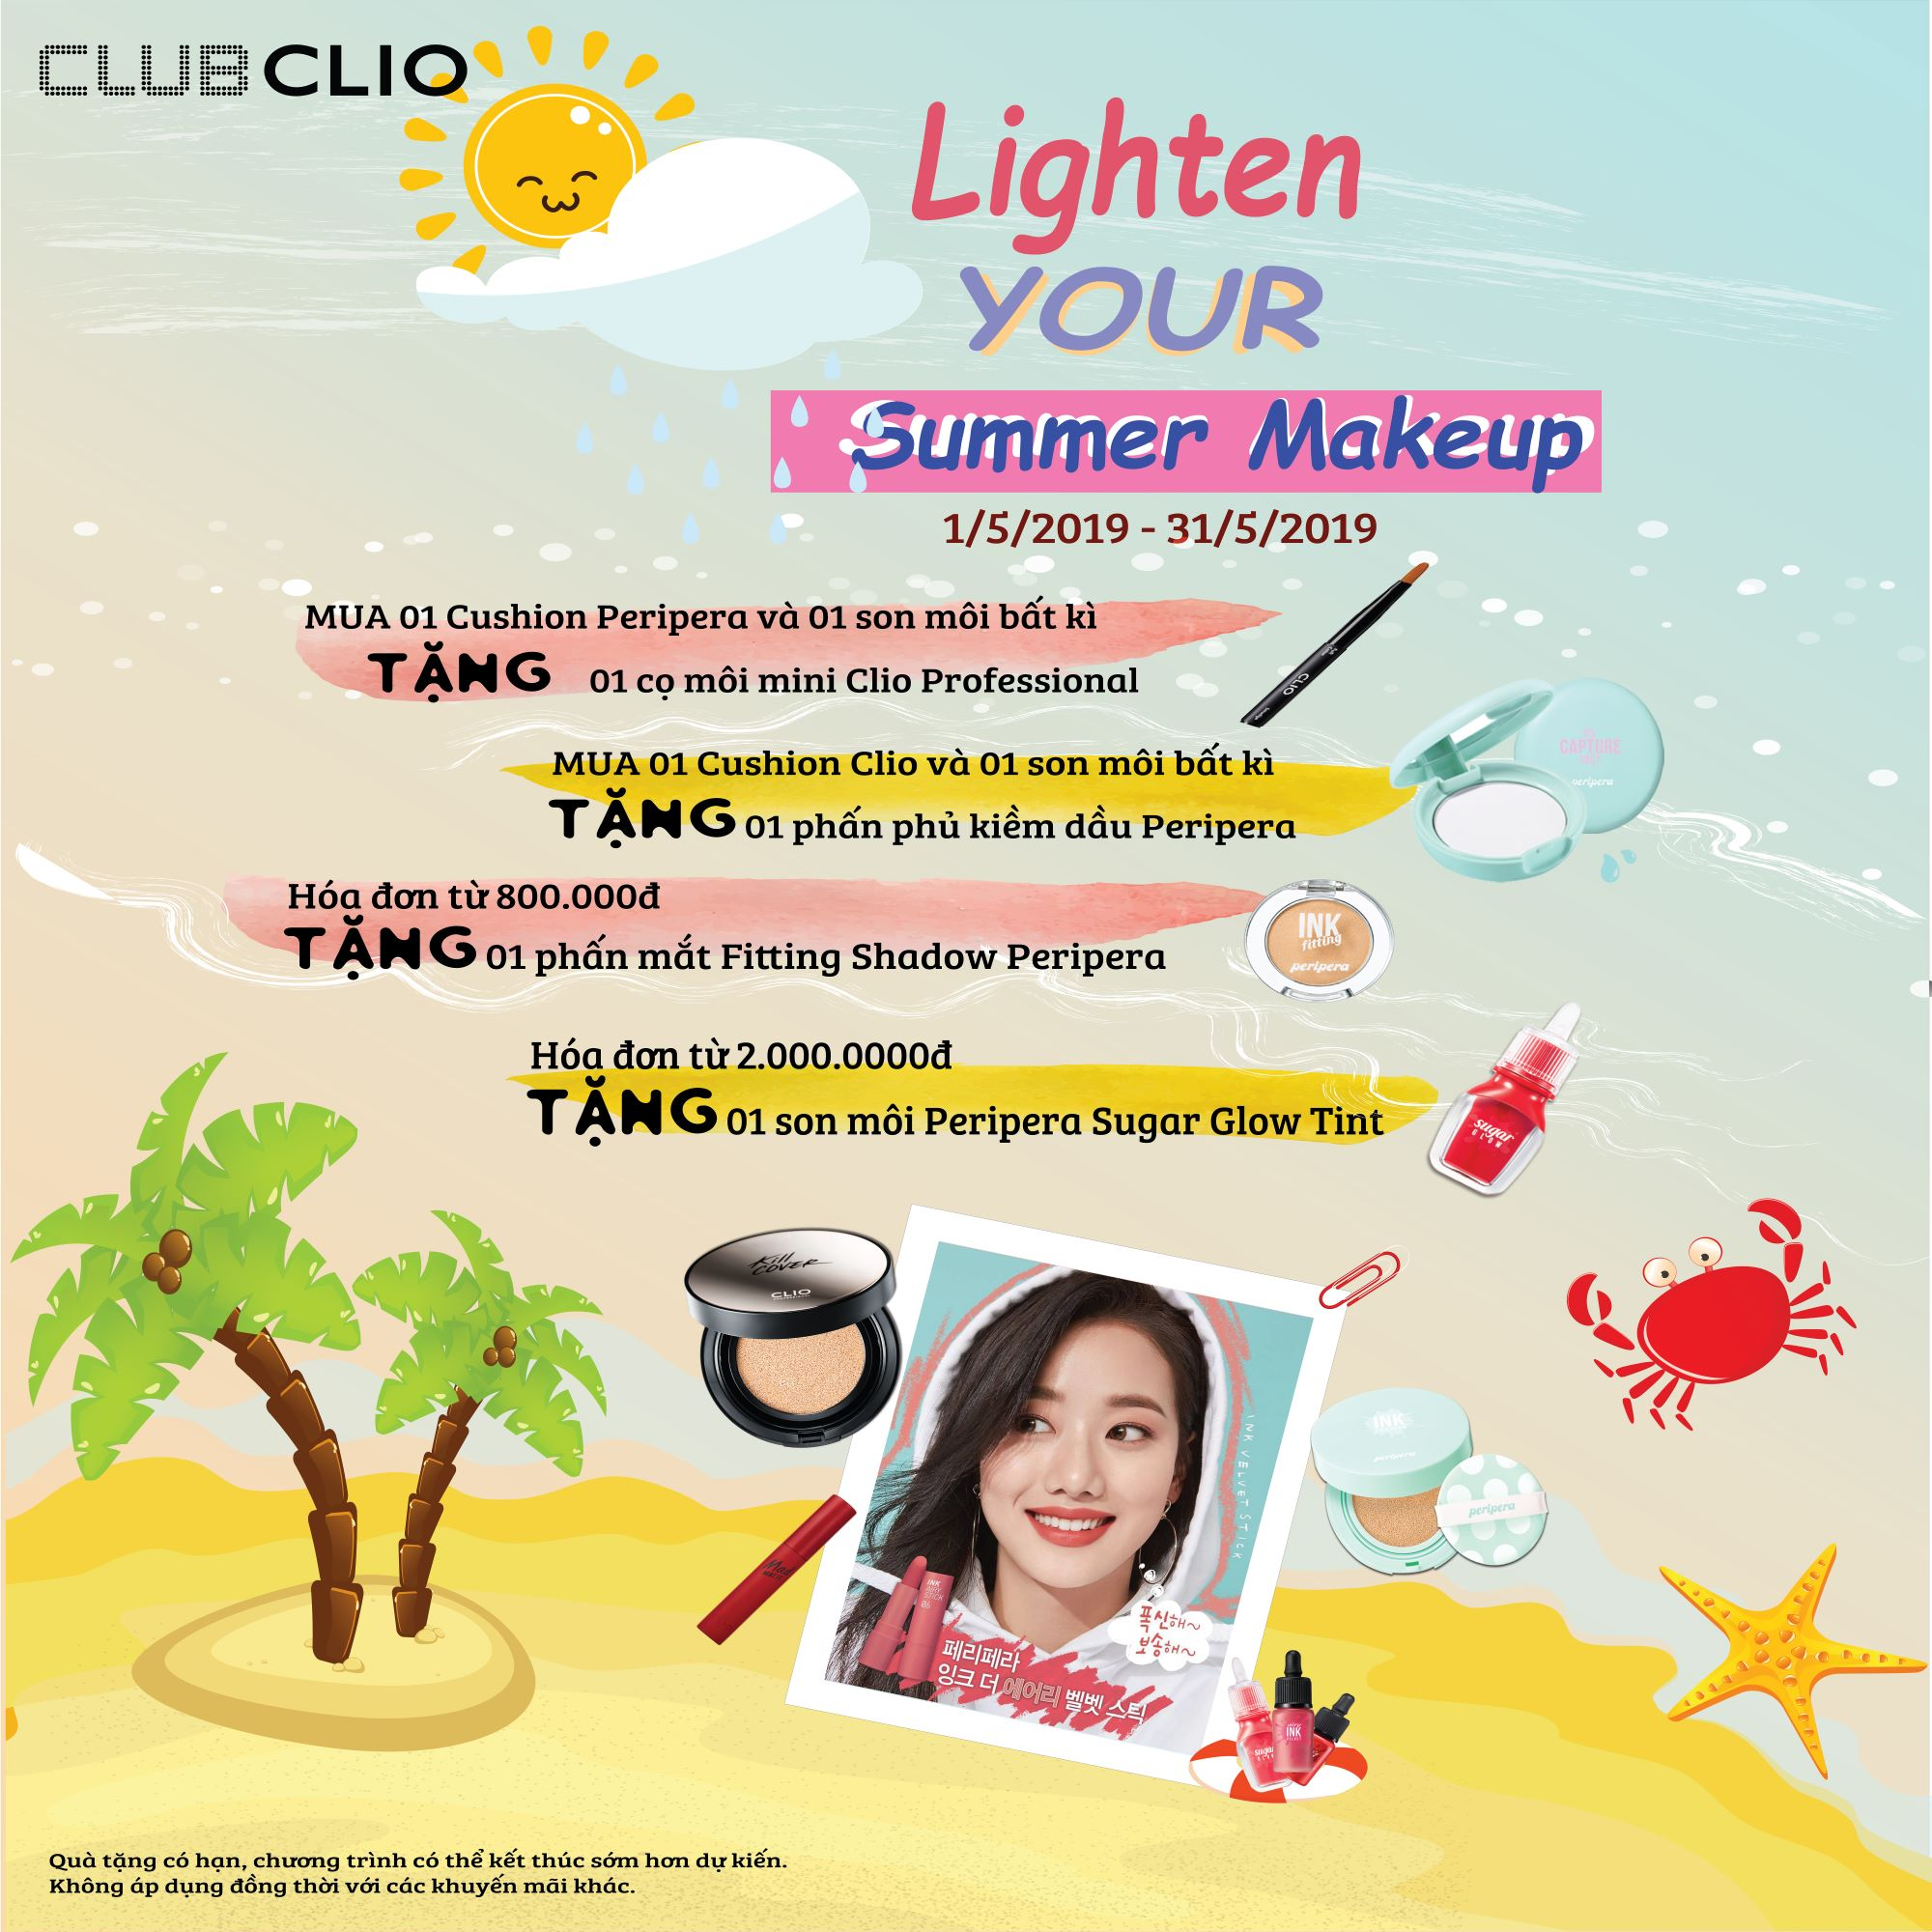 LIGHTEN YOUR SUMMER MAKE UP